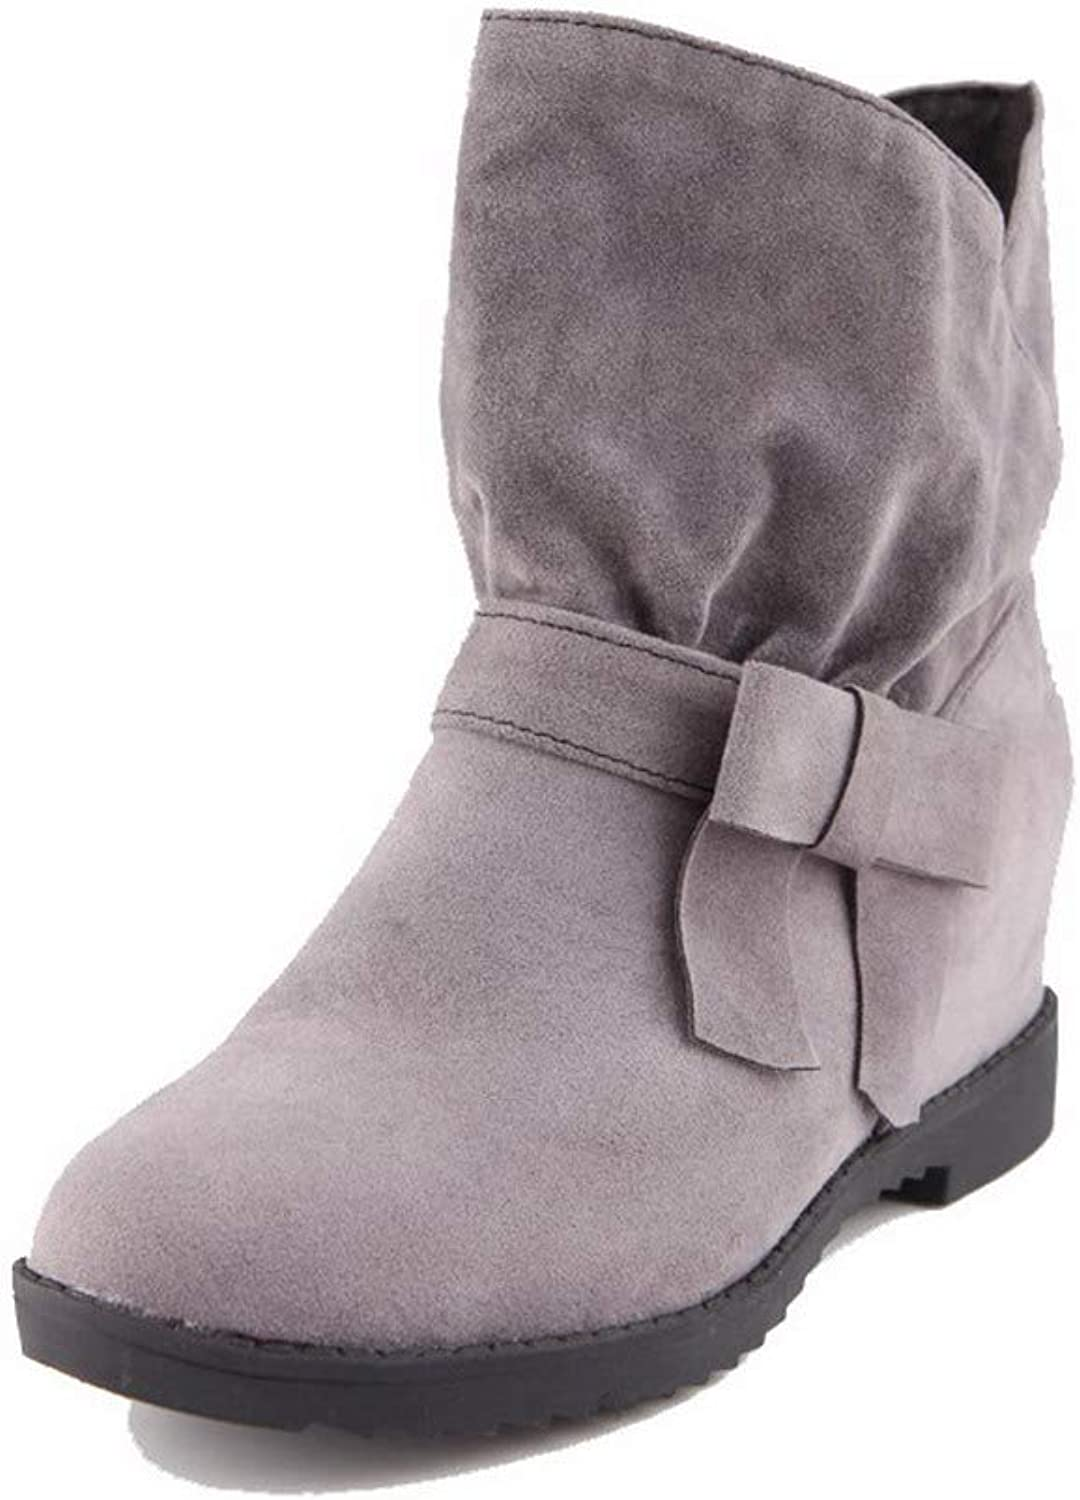 AllhqFashion Women's Frosted Mid-Calf Solid Pull-On Kitten-Heels Boots, FBUXD034432